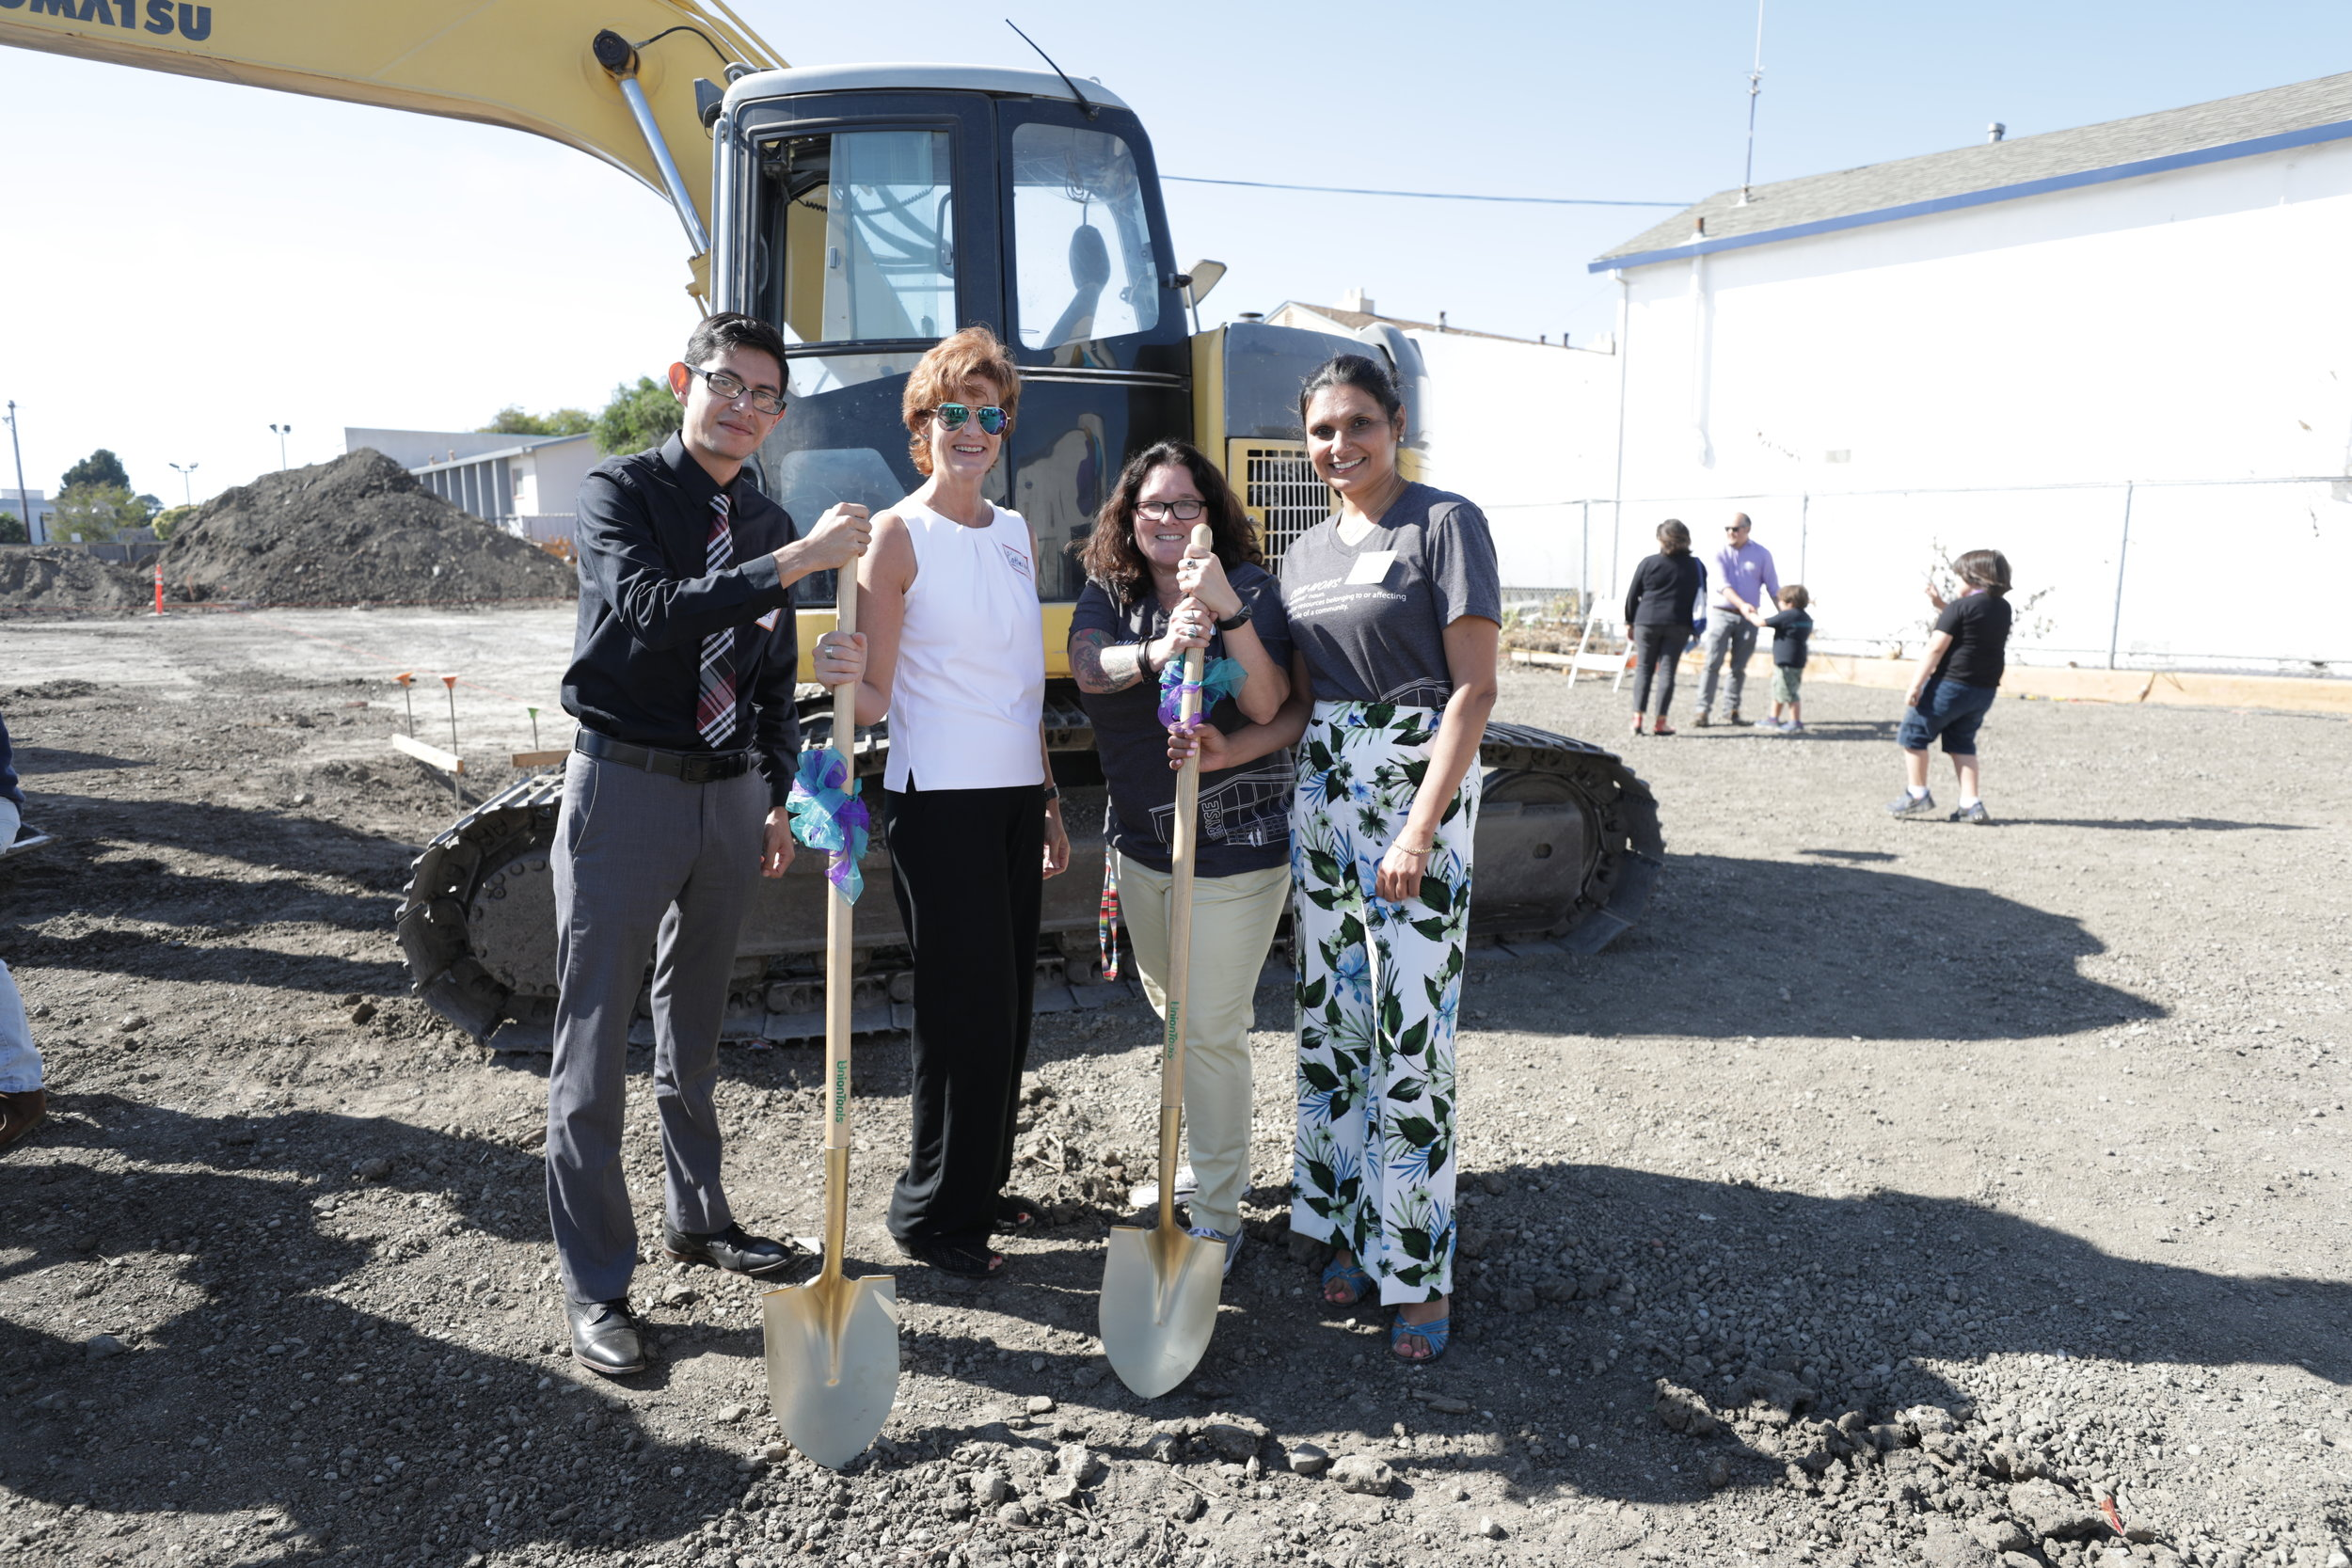 From Left to Right:   Raza Development Fund with RYSE Co-Founders. Miguel Baca, Catherine Kes, Kimberly Aceves-Iniguez, and Kanwarpal Dhaliwal.